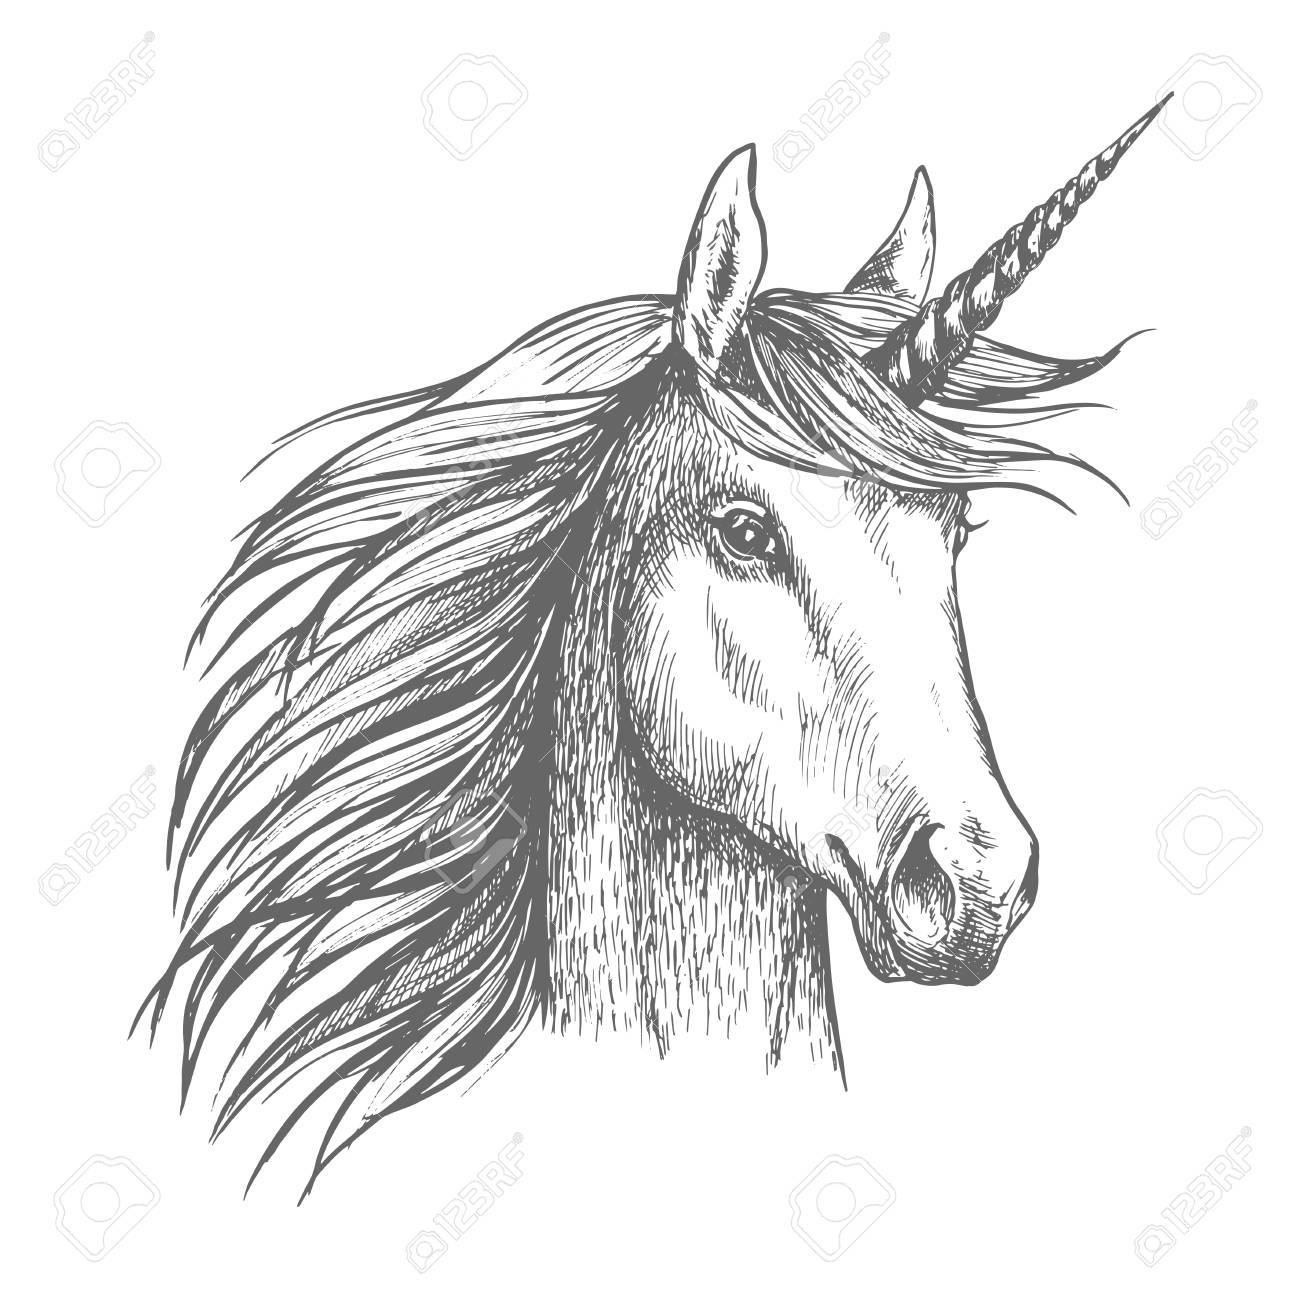 Unicorn Horse Sketch With Horn Royalty Free Cliparts Vectors And Stock Illustration Image 78078390